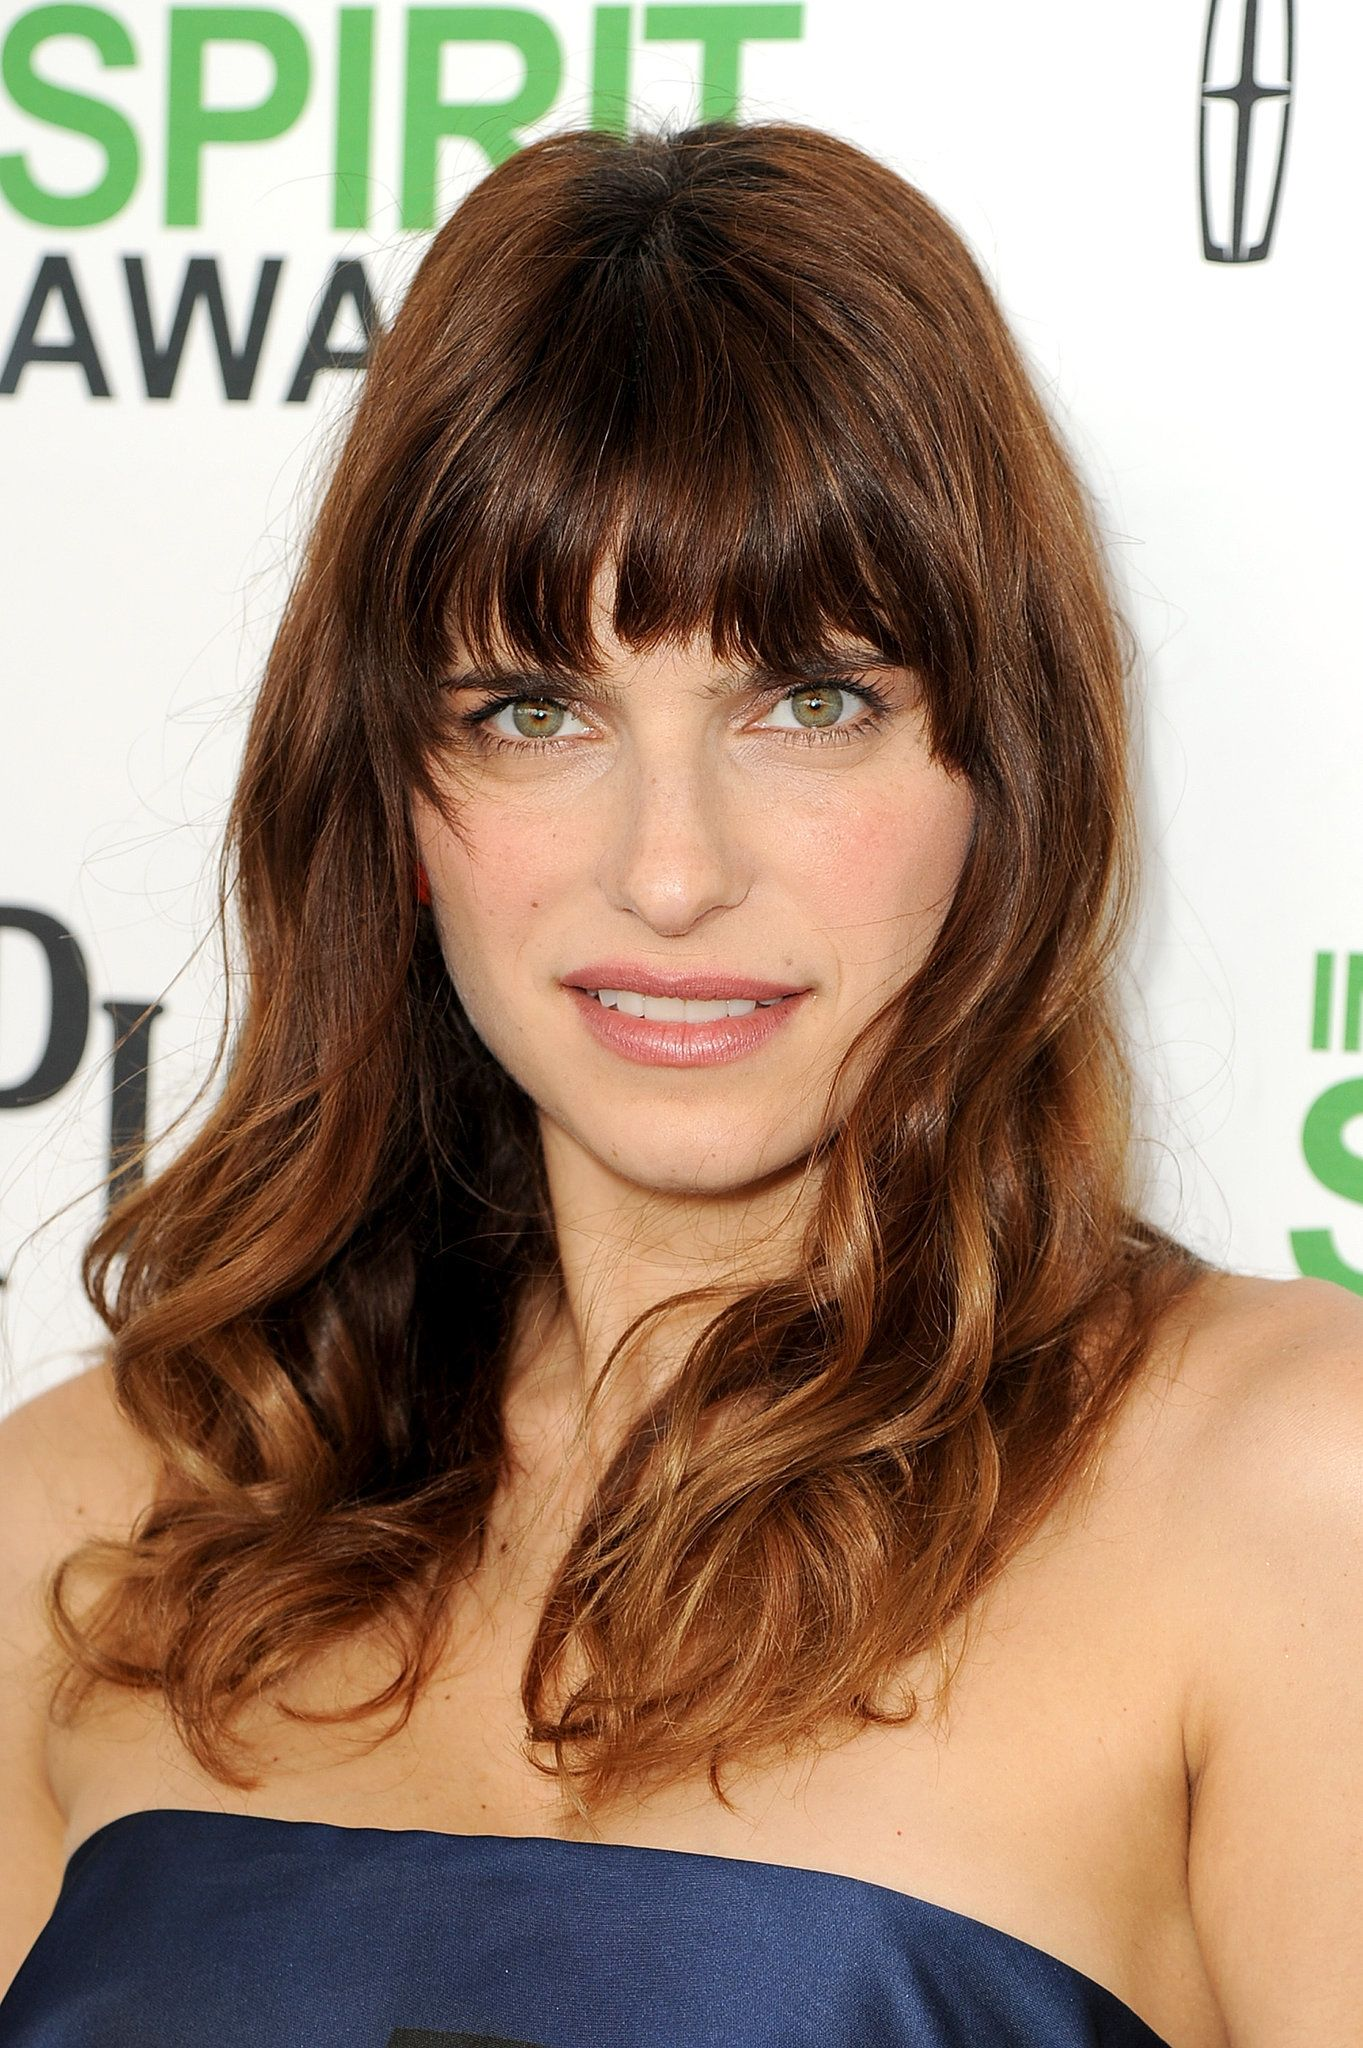 picture Lake bell leaked 7 Photos